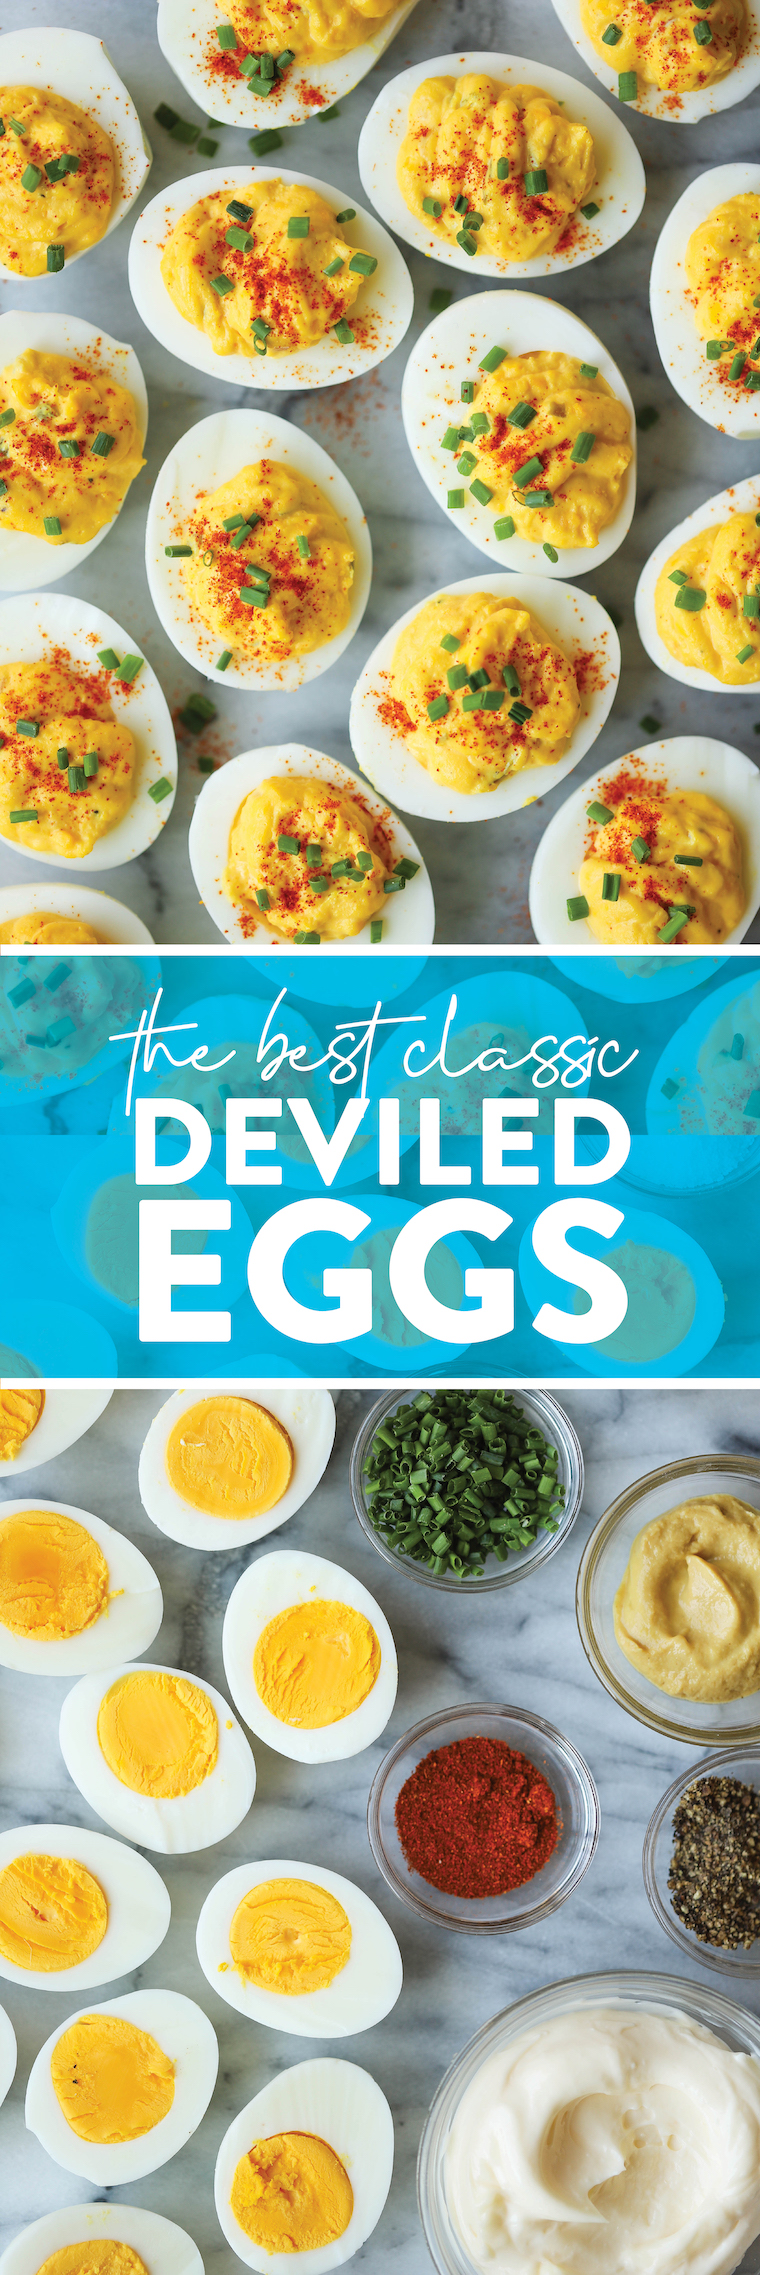 The Best Classic Stuffed Eggs - Perfect for Holidays and Meetings.  It's a classic!  So good, so creamy and such a crowd pleaser.